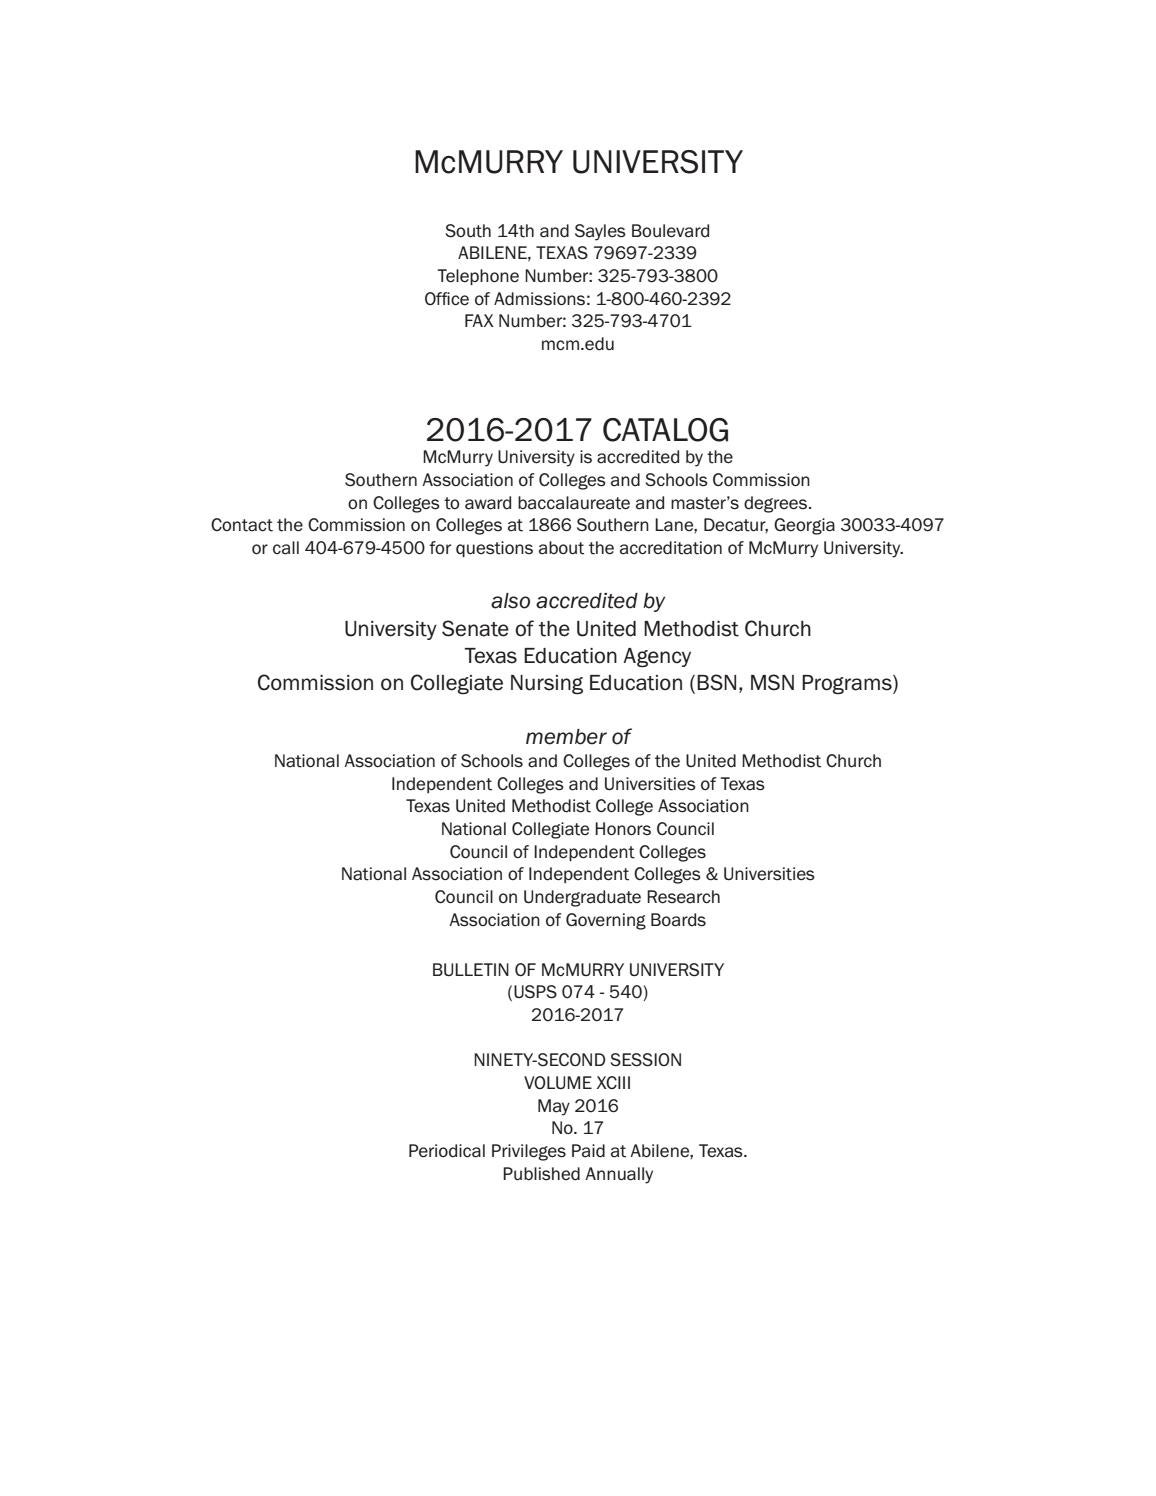 McMurry Catalog 2016-17 by McMurry - issuu